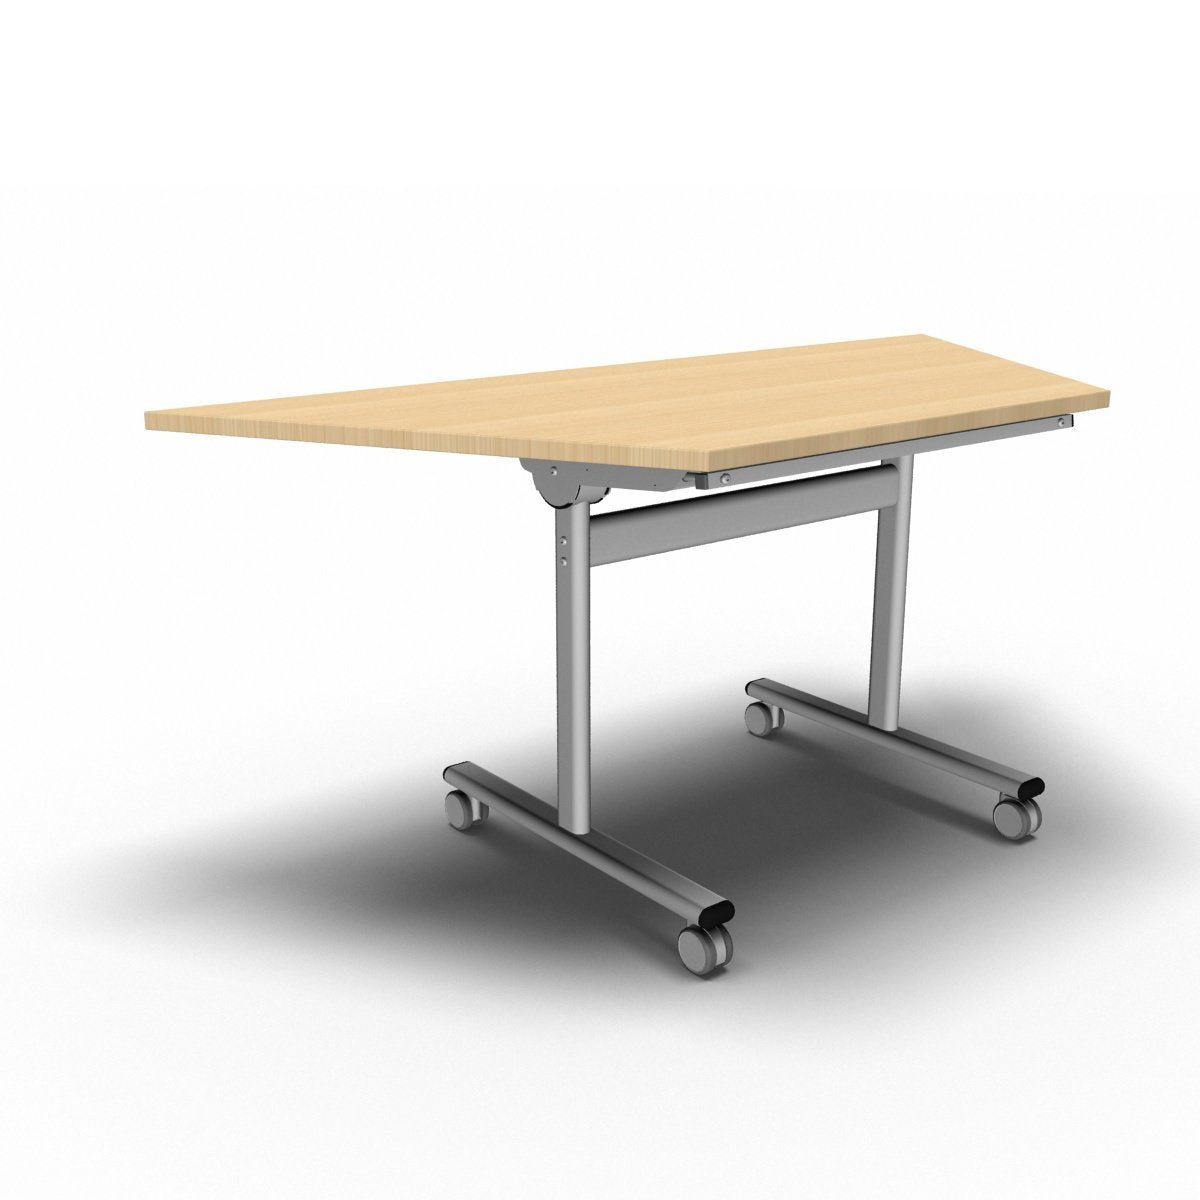 Table 1600 x 800 x 720mm / Trapezoidal / Maple Synergy Flip Top Tables